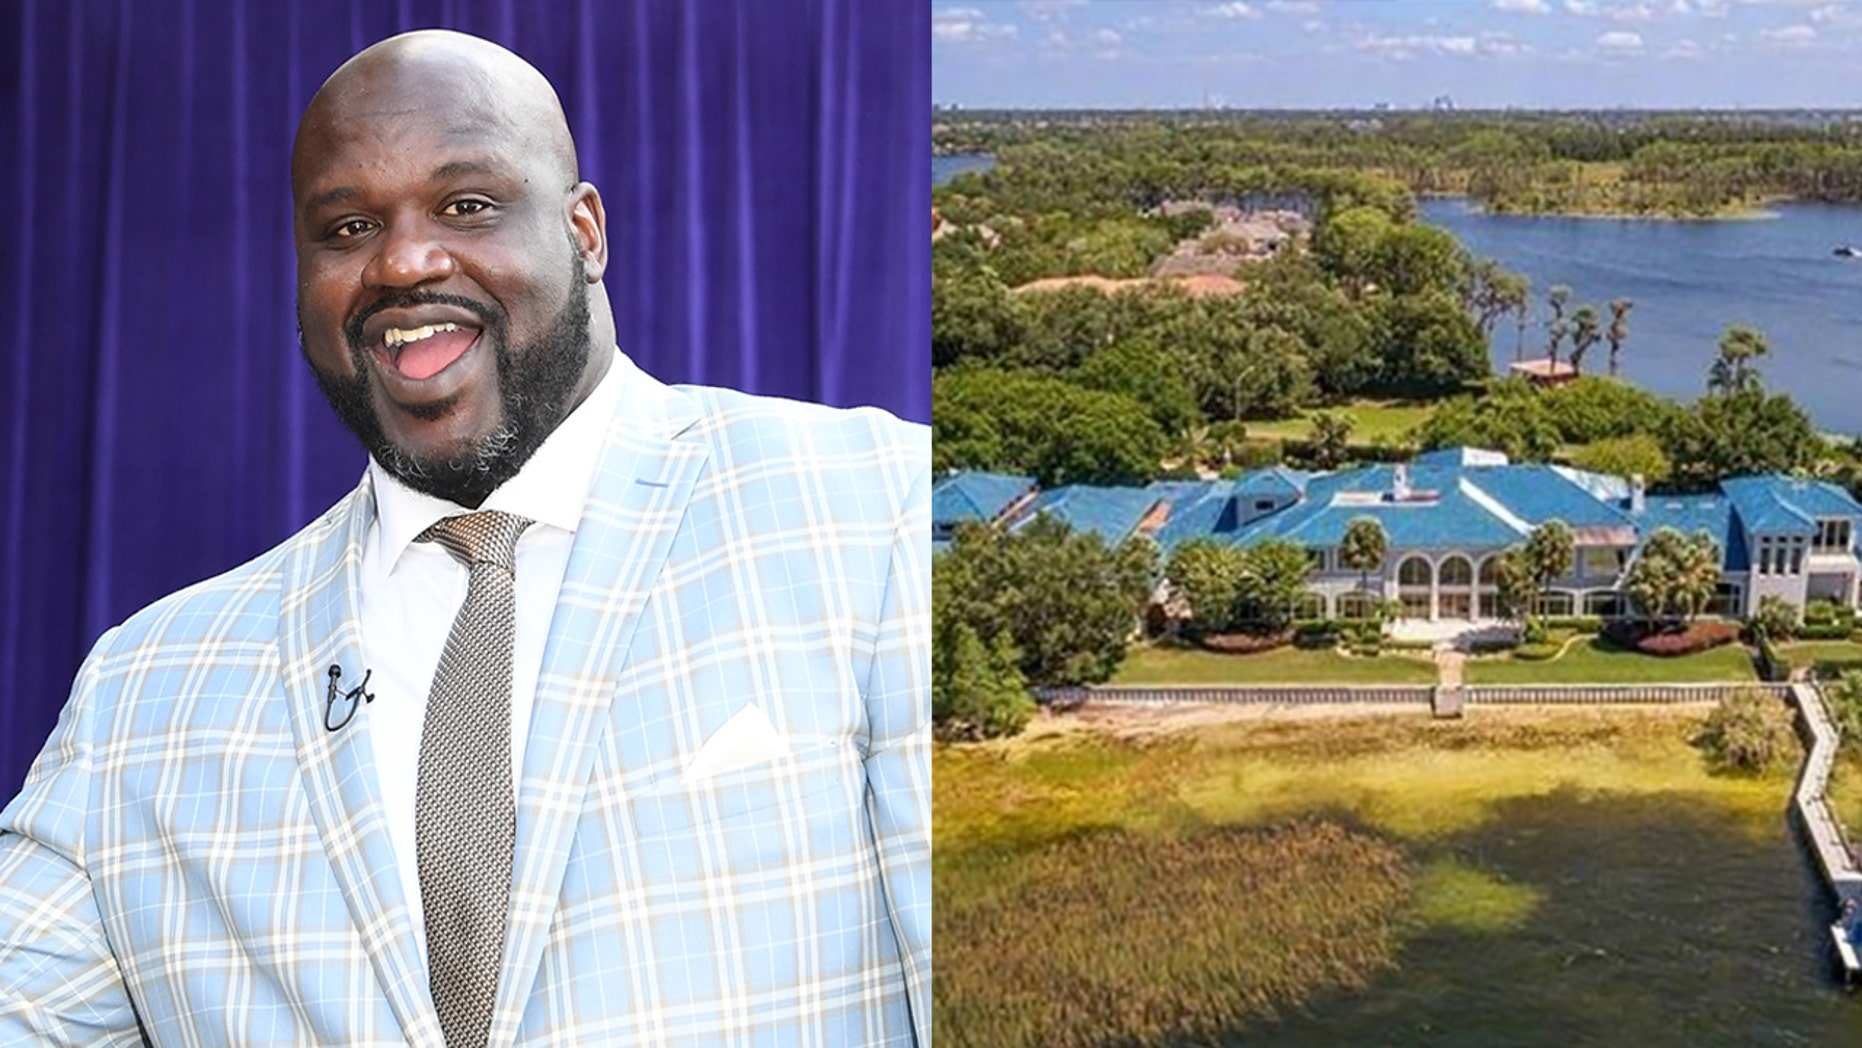 The legendary NBA star has put the Orlando mansion up for sale.